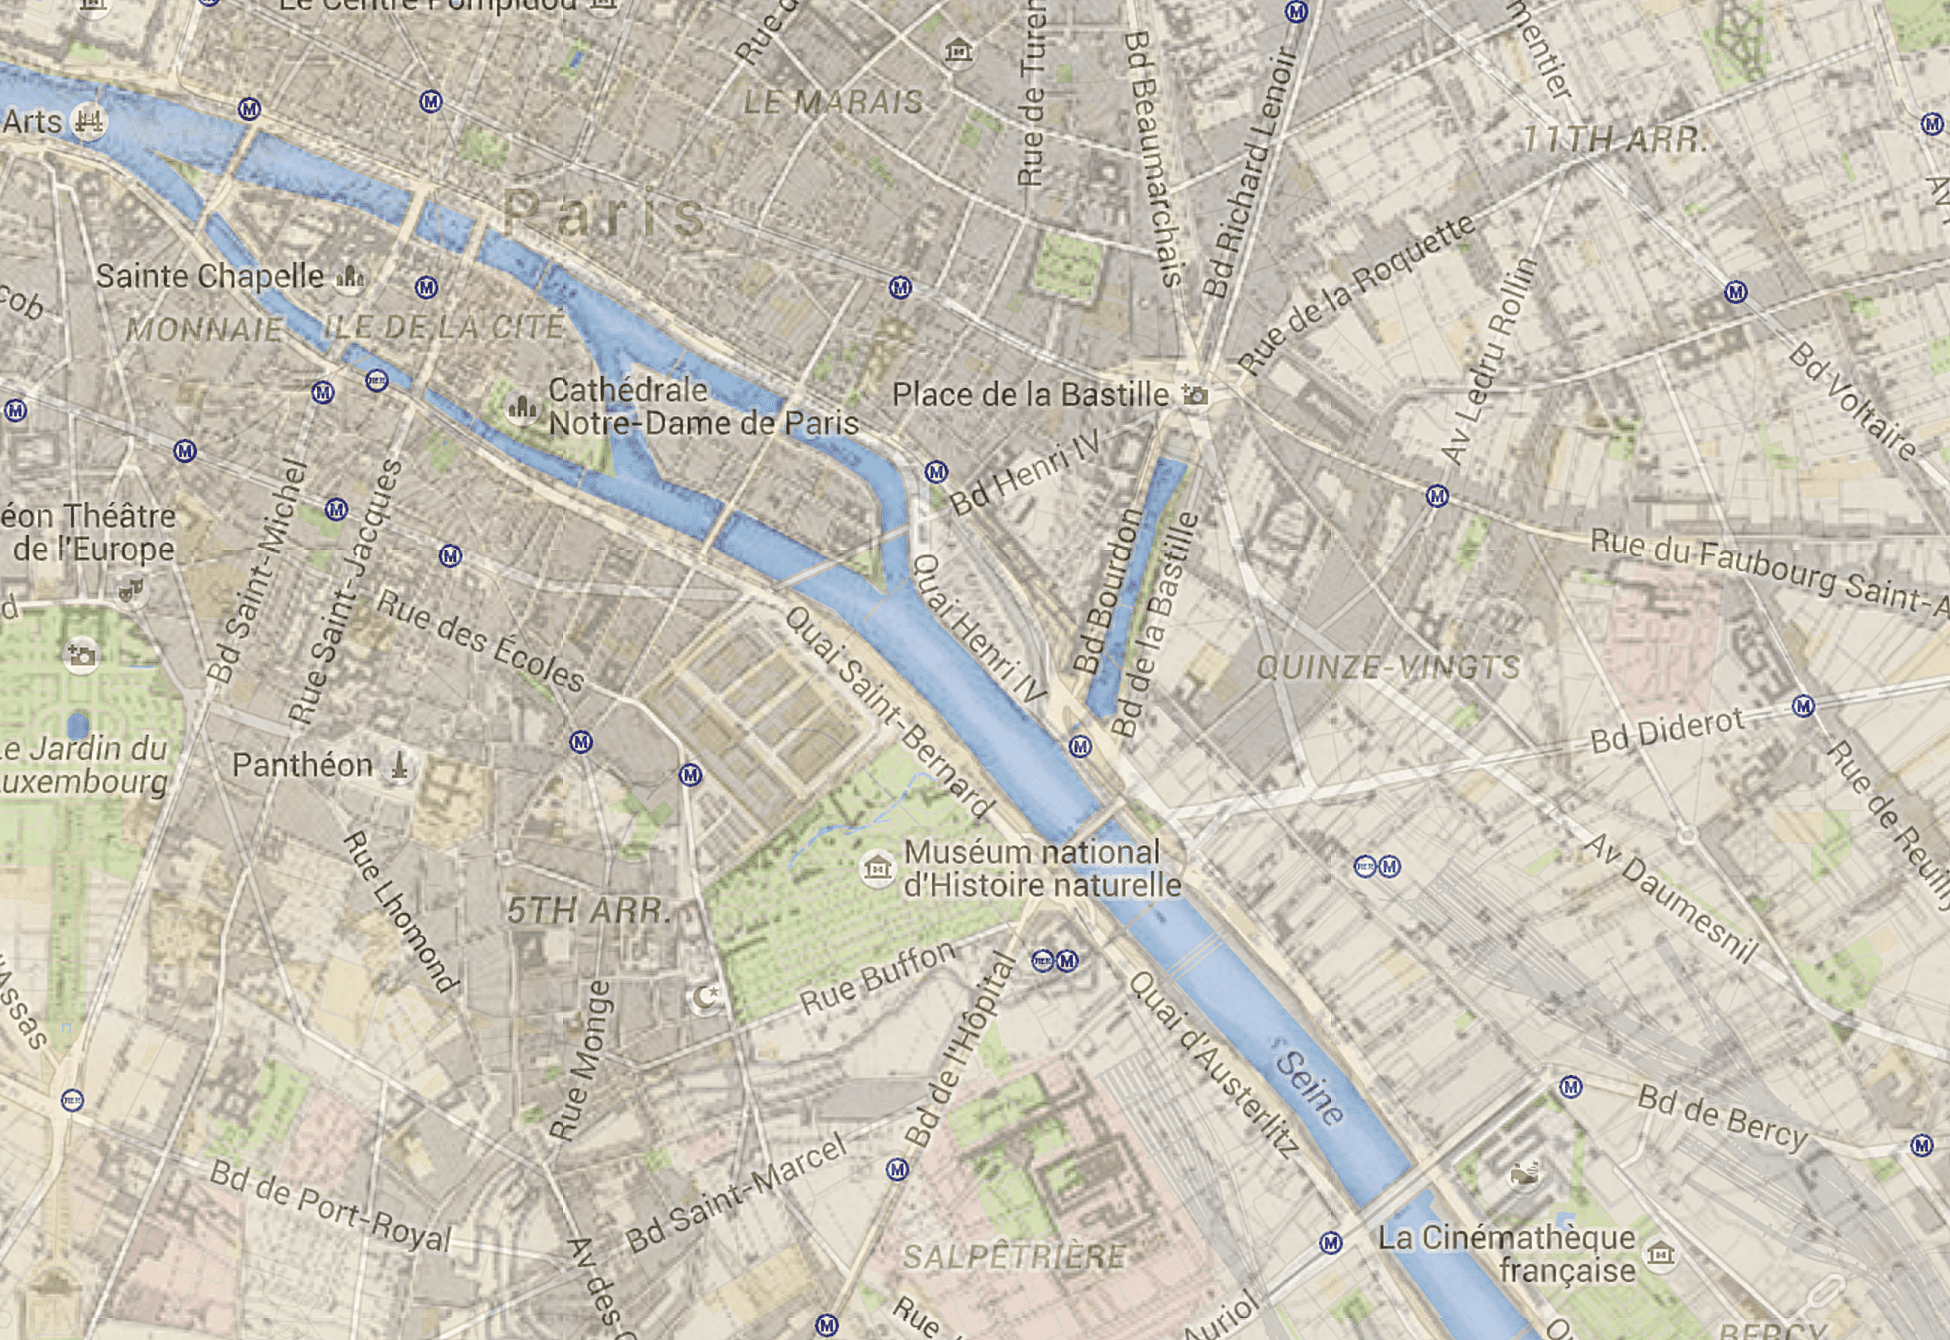 Historical Map Overlays for Google Maps and Google Earth on historical maps berlin, books of paris, historical map of washington dc, architecture of paris, geography of paris, flags of paris, drawings of paris, places of paris, historical maps texas, prints of paris, people of paris, posters of paris, historical buildings in paris, postcards of paris, calendars of paris, diaries of paris, general map of paris, historical maps london, world of paris, statistics of paris,